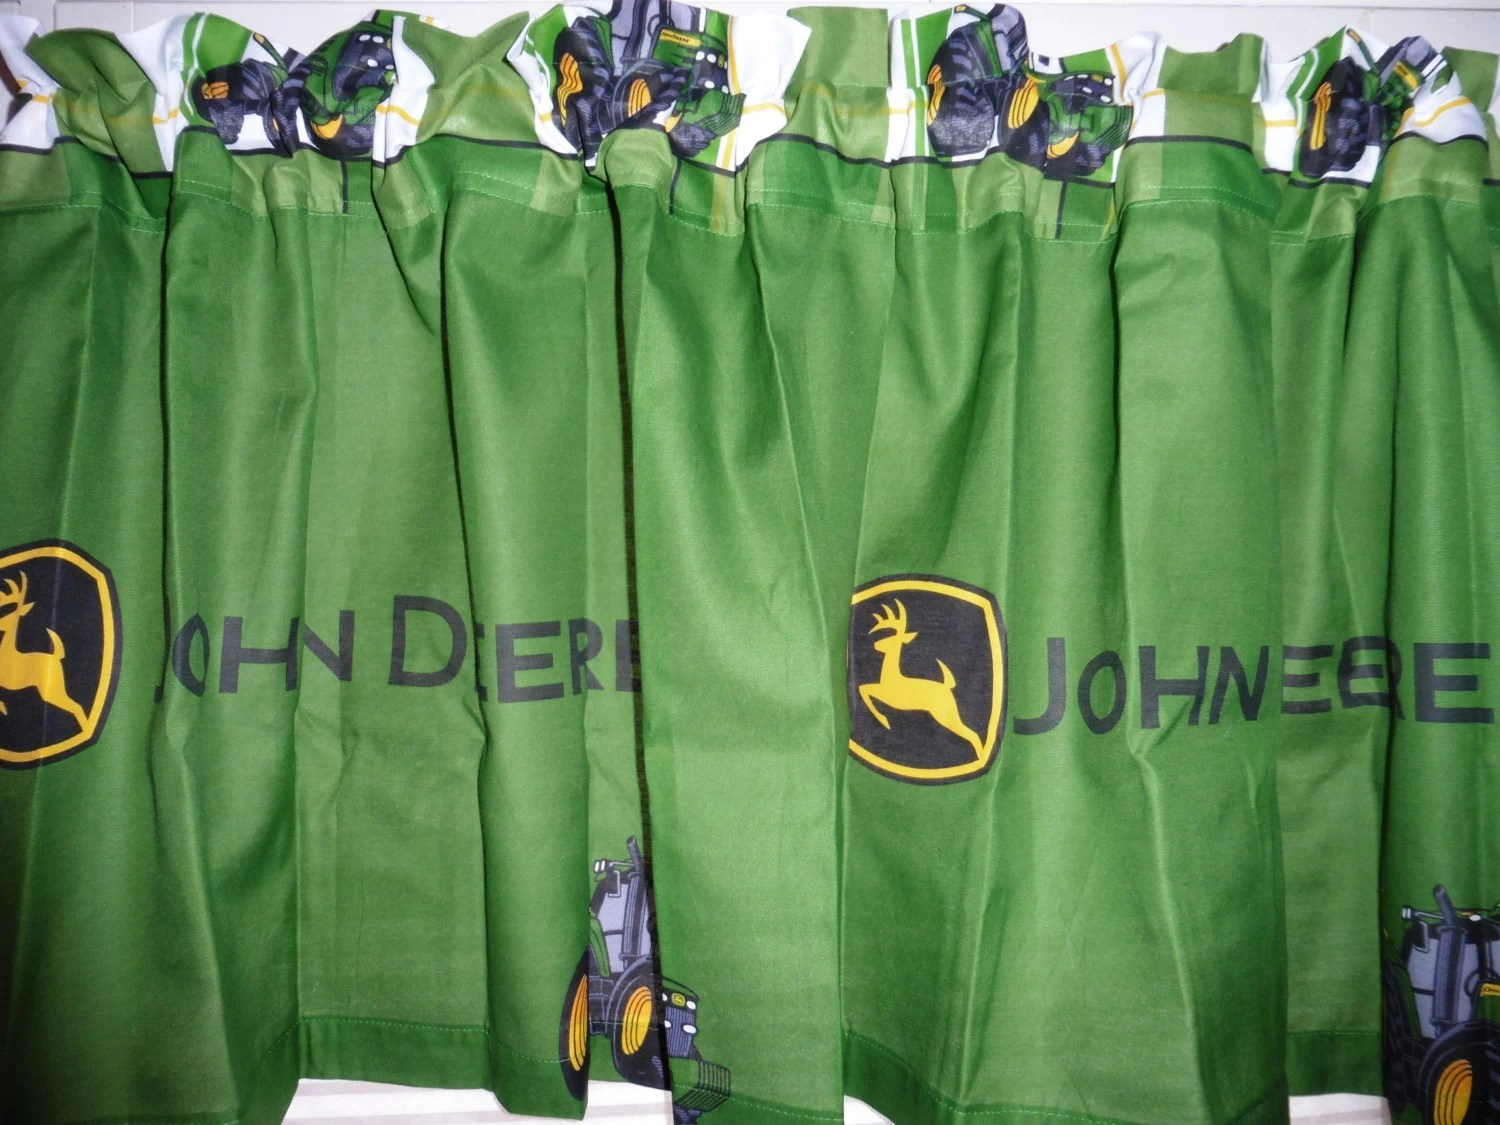 John Deere Curtains